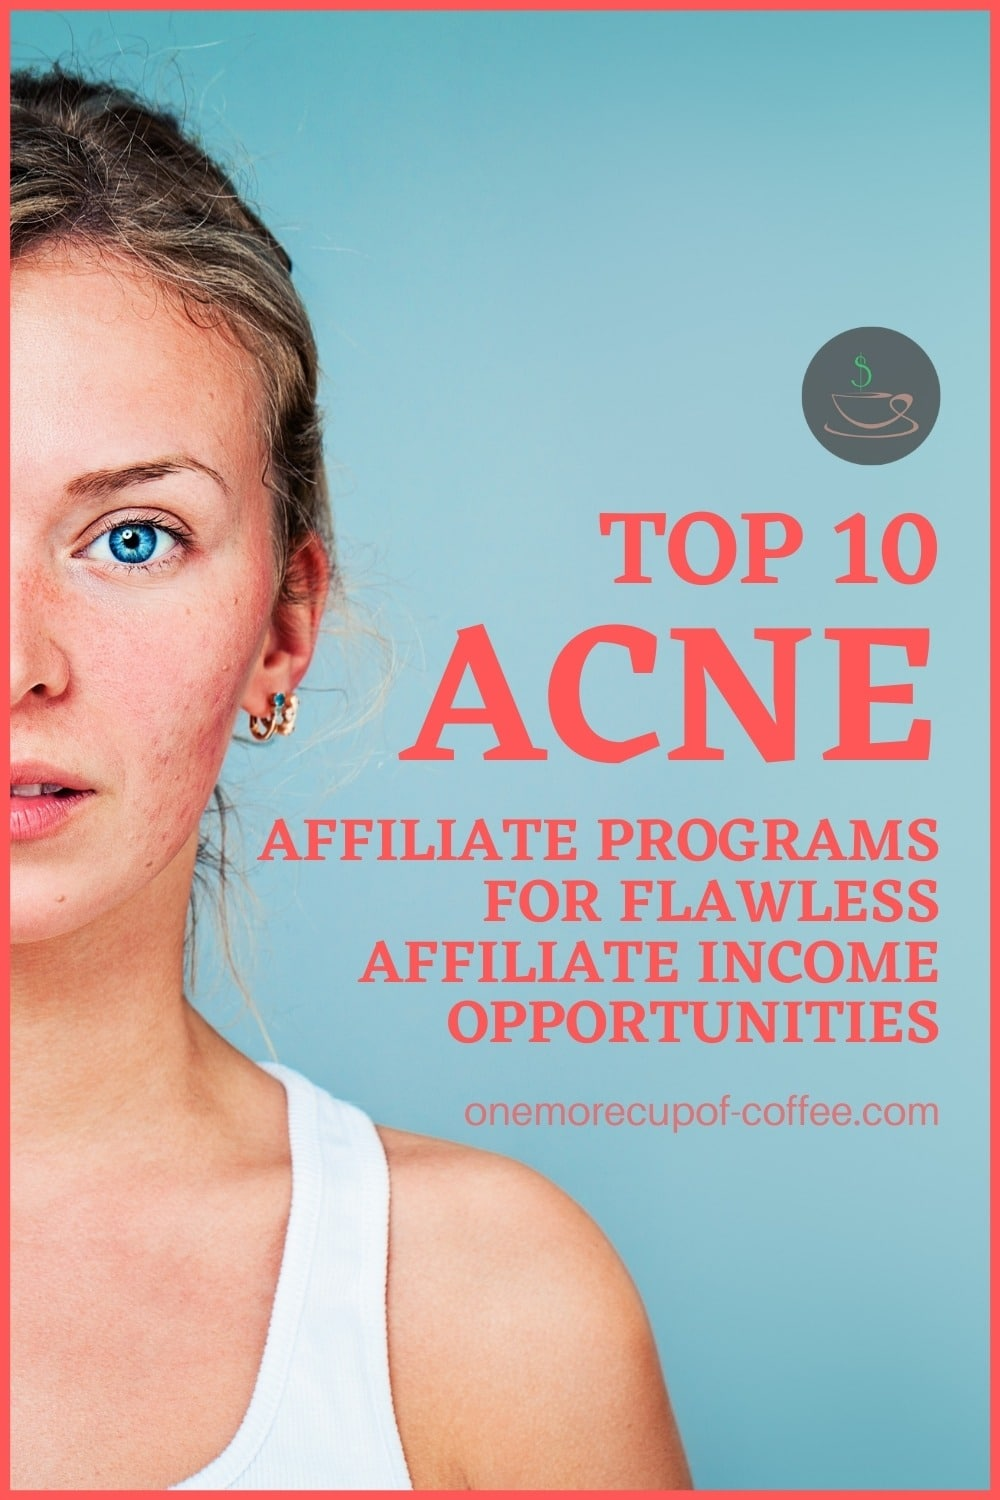 """closeup image of a woman in white tank top with mild acne, with text overlay """"Top 10 Acne Affiliate Programs For Flawless Affiliate Income Opportunities"""""""